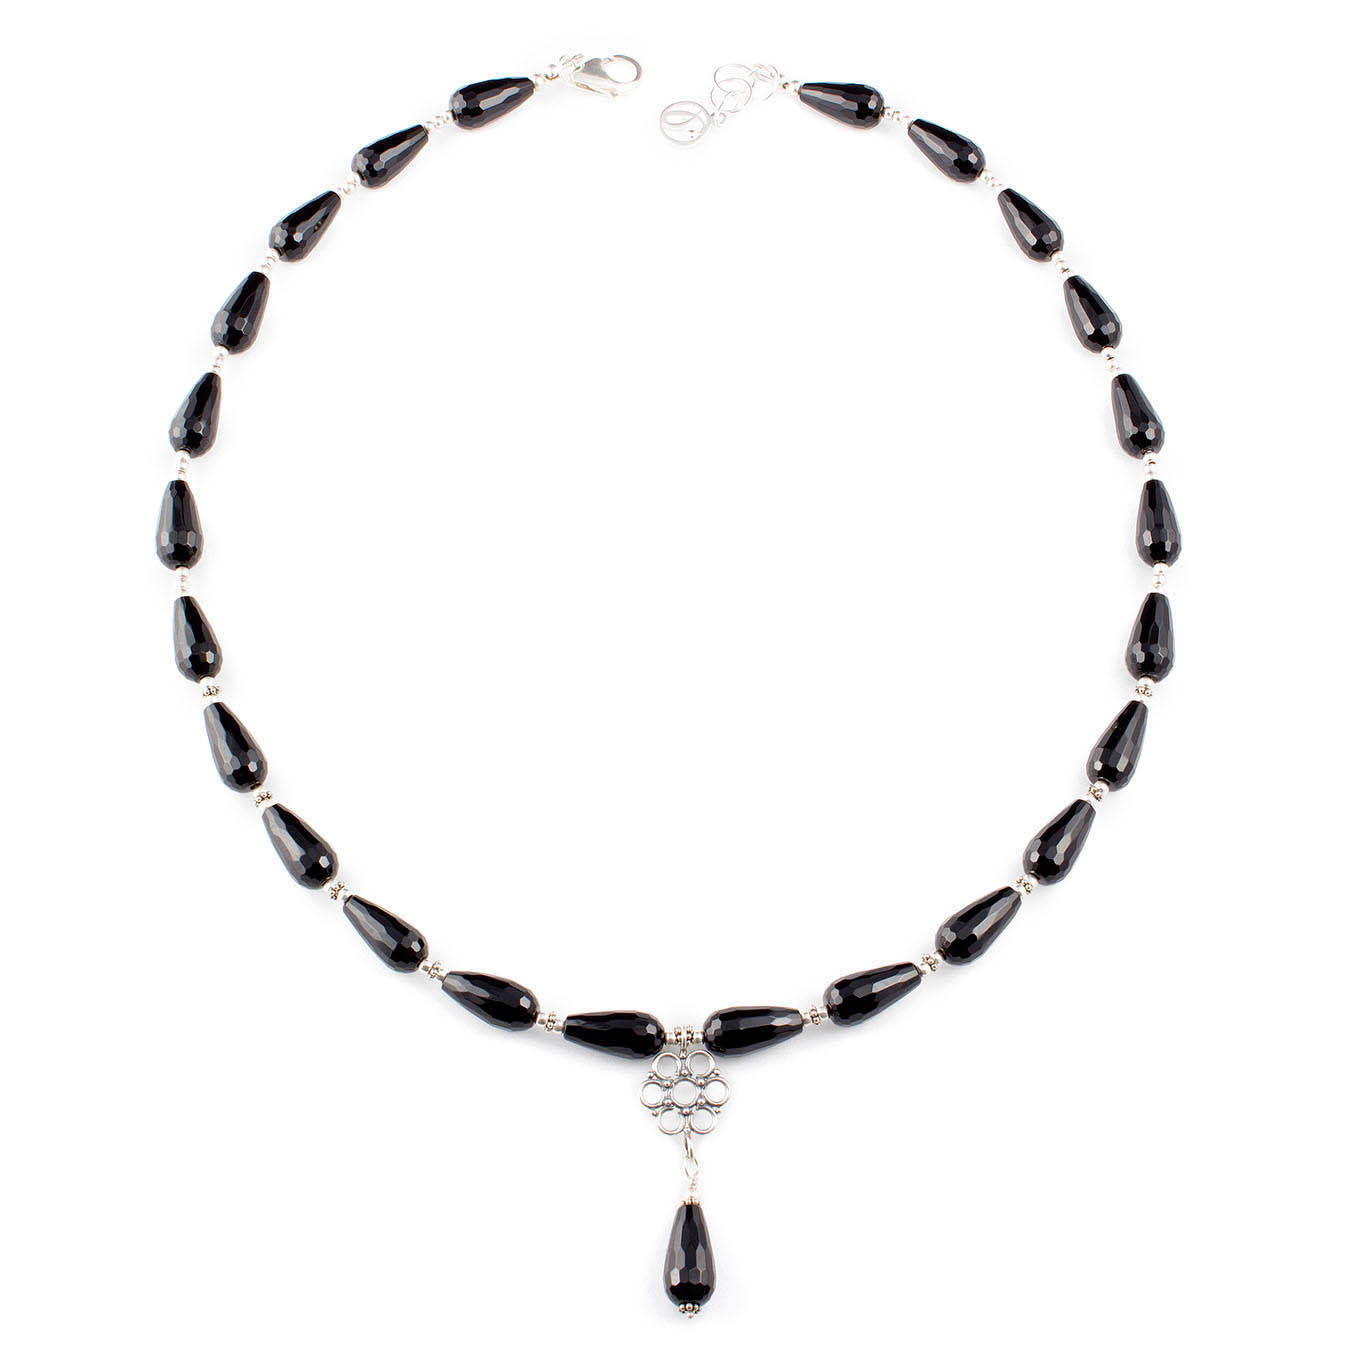 Handmade bali pendant  jewelry necklace made of teardrop black agate